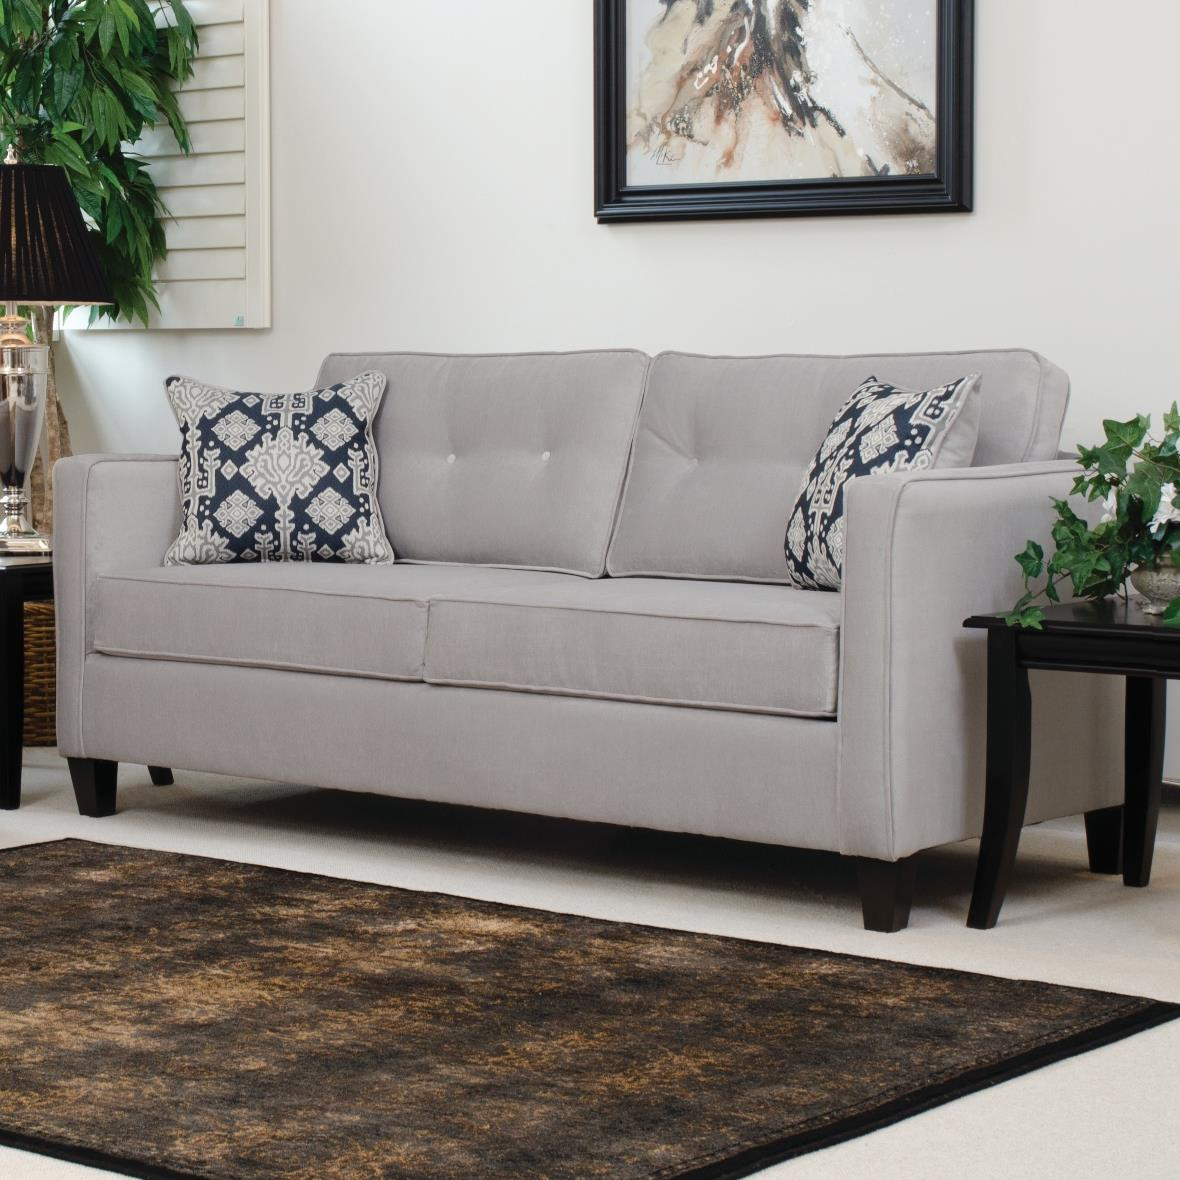 1375 Sofa by Serta Upholstery by Hughes Furniture at Rooms for Less